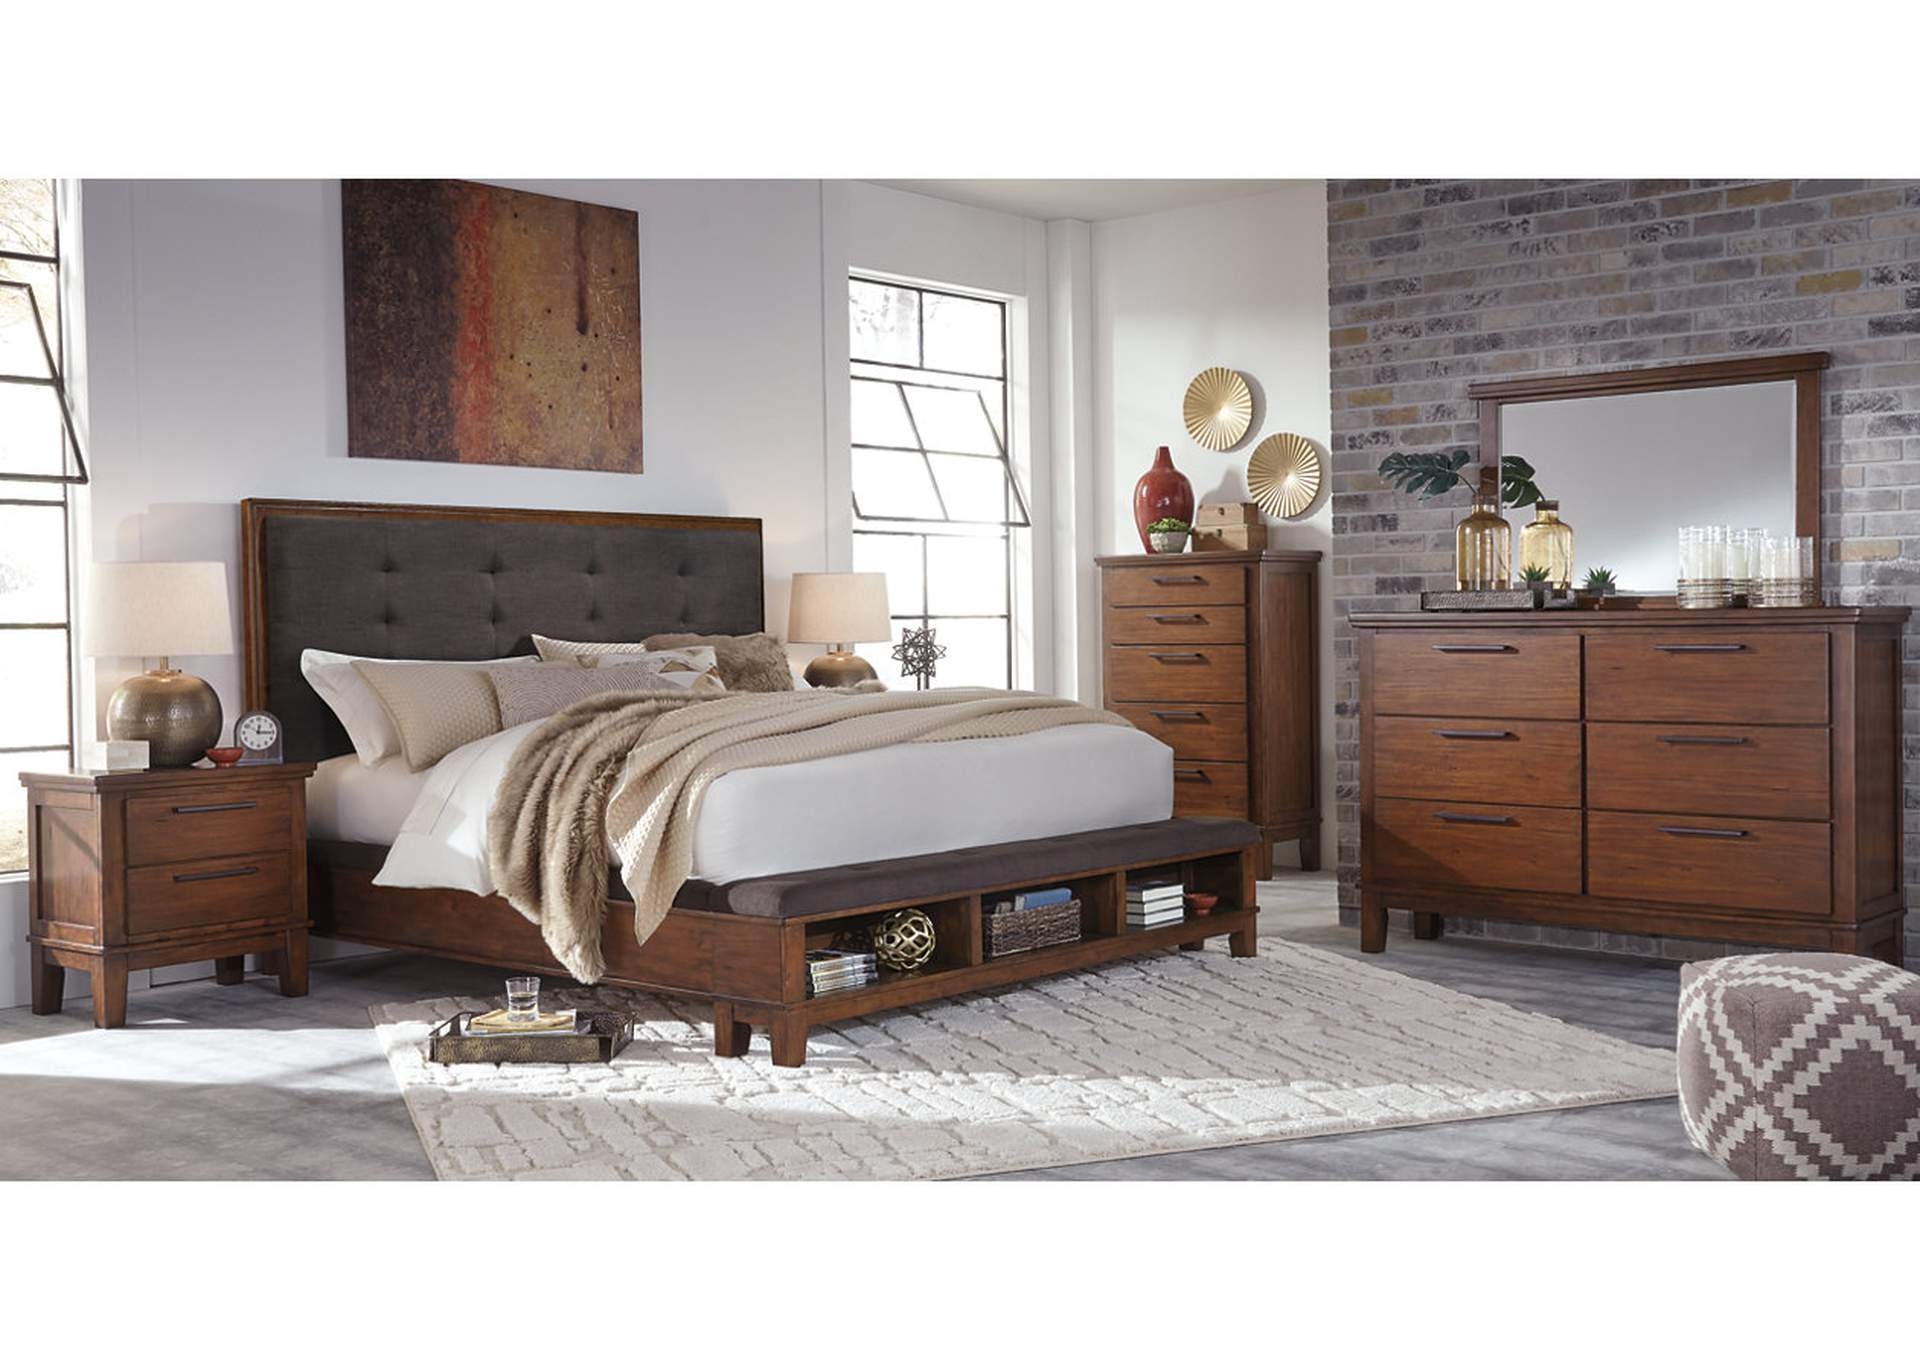 Ralene Medium Brown King Upholstered Storage Bed w/Dresser, Mirror & Nightstand,Signature Design By Ashley